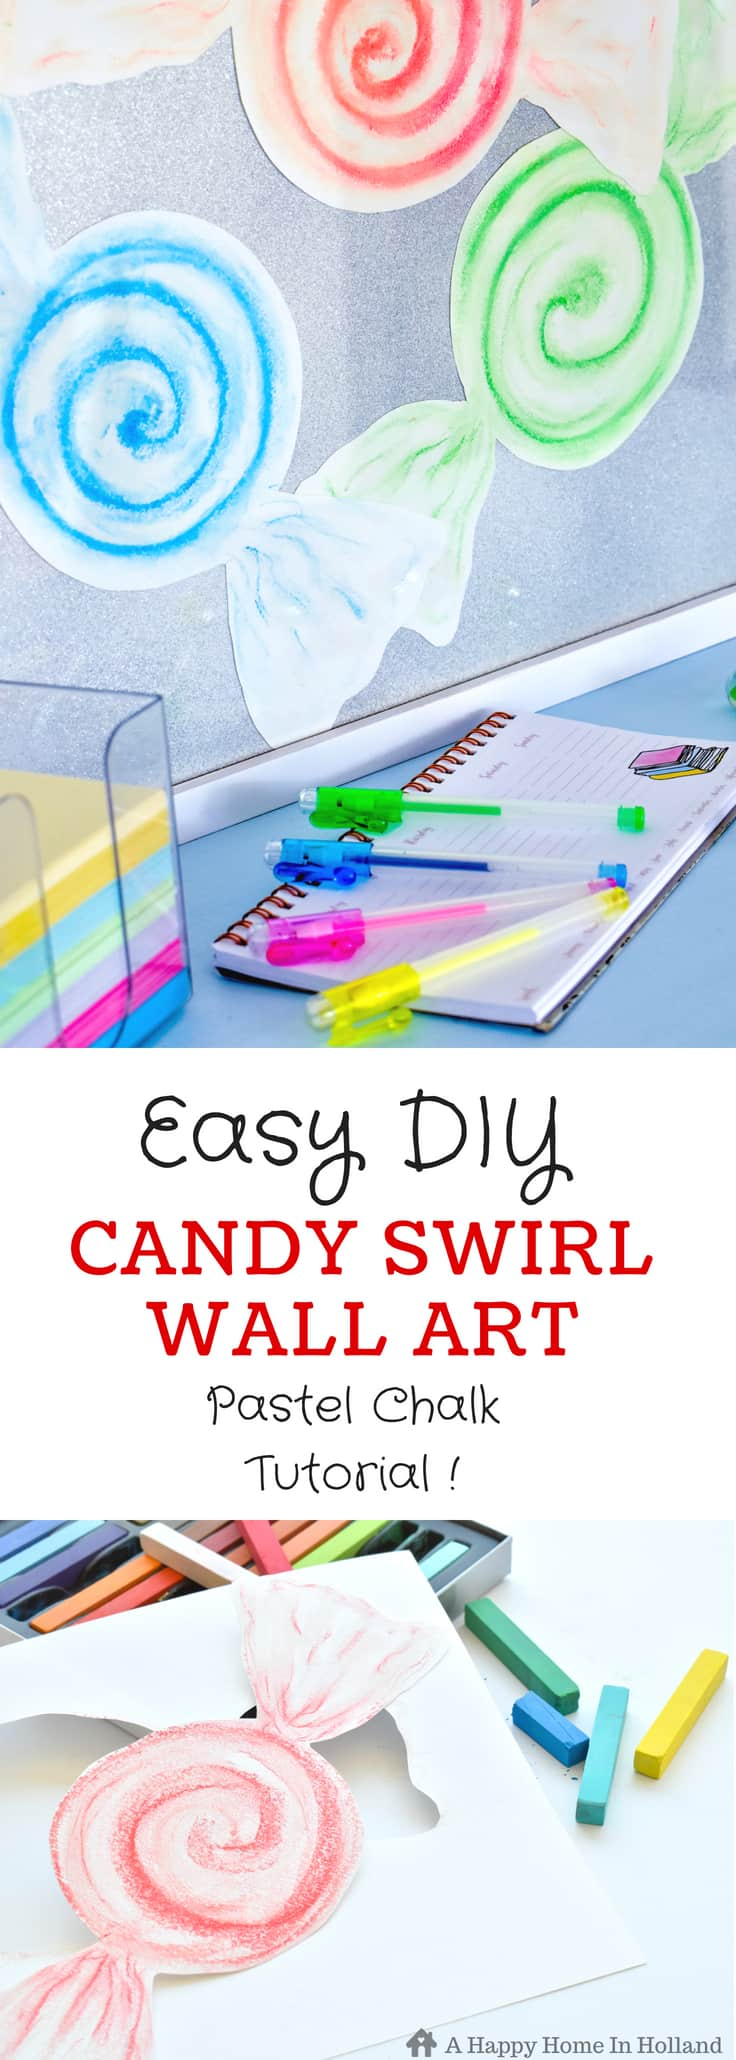 How to create fun Candy Swirl wall art using pastel chalks. #diywallart #girlsroom #diywalldecor #candydecor